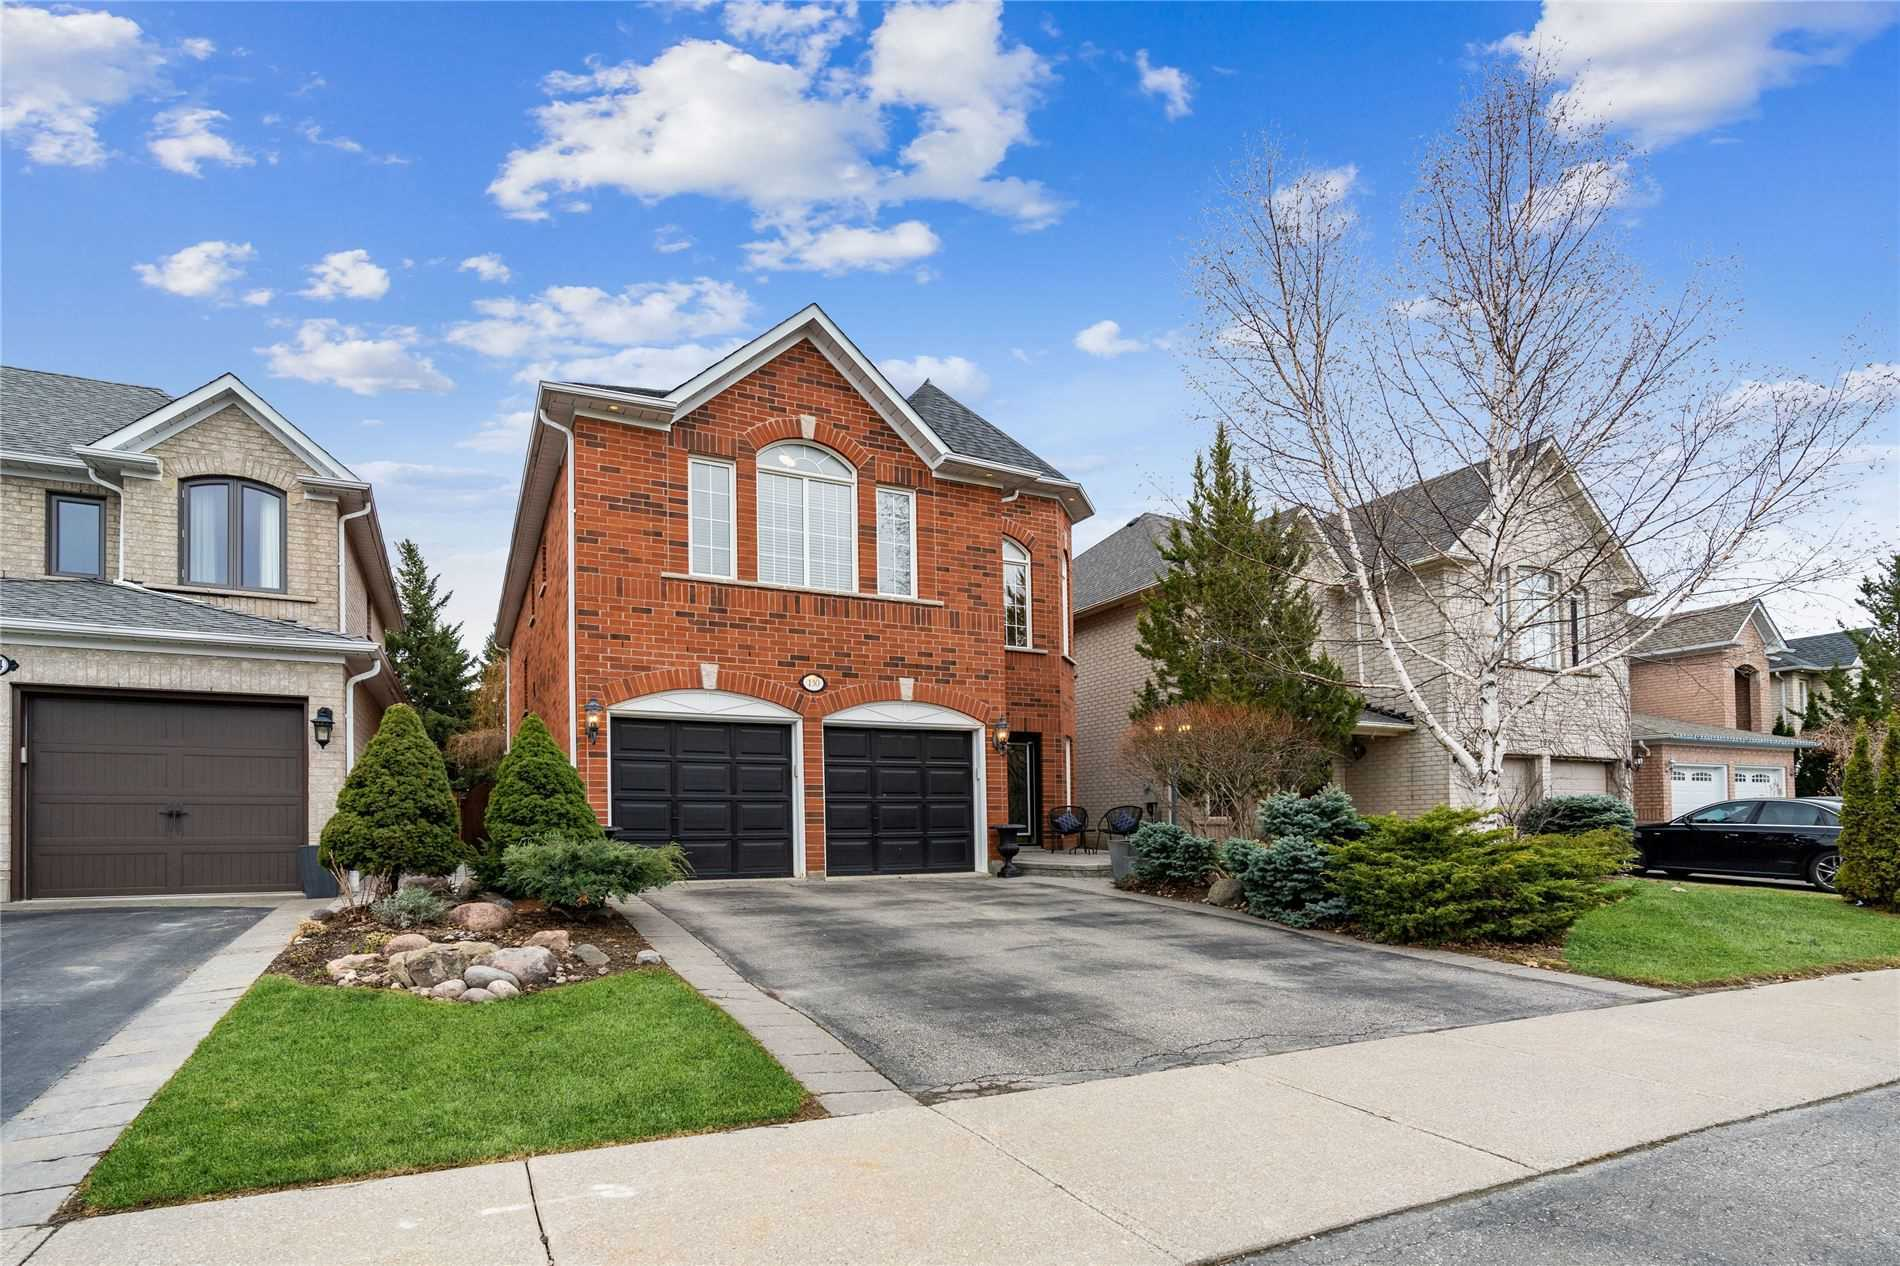 130 Hollybush Dr